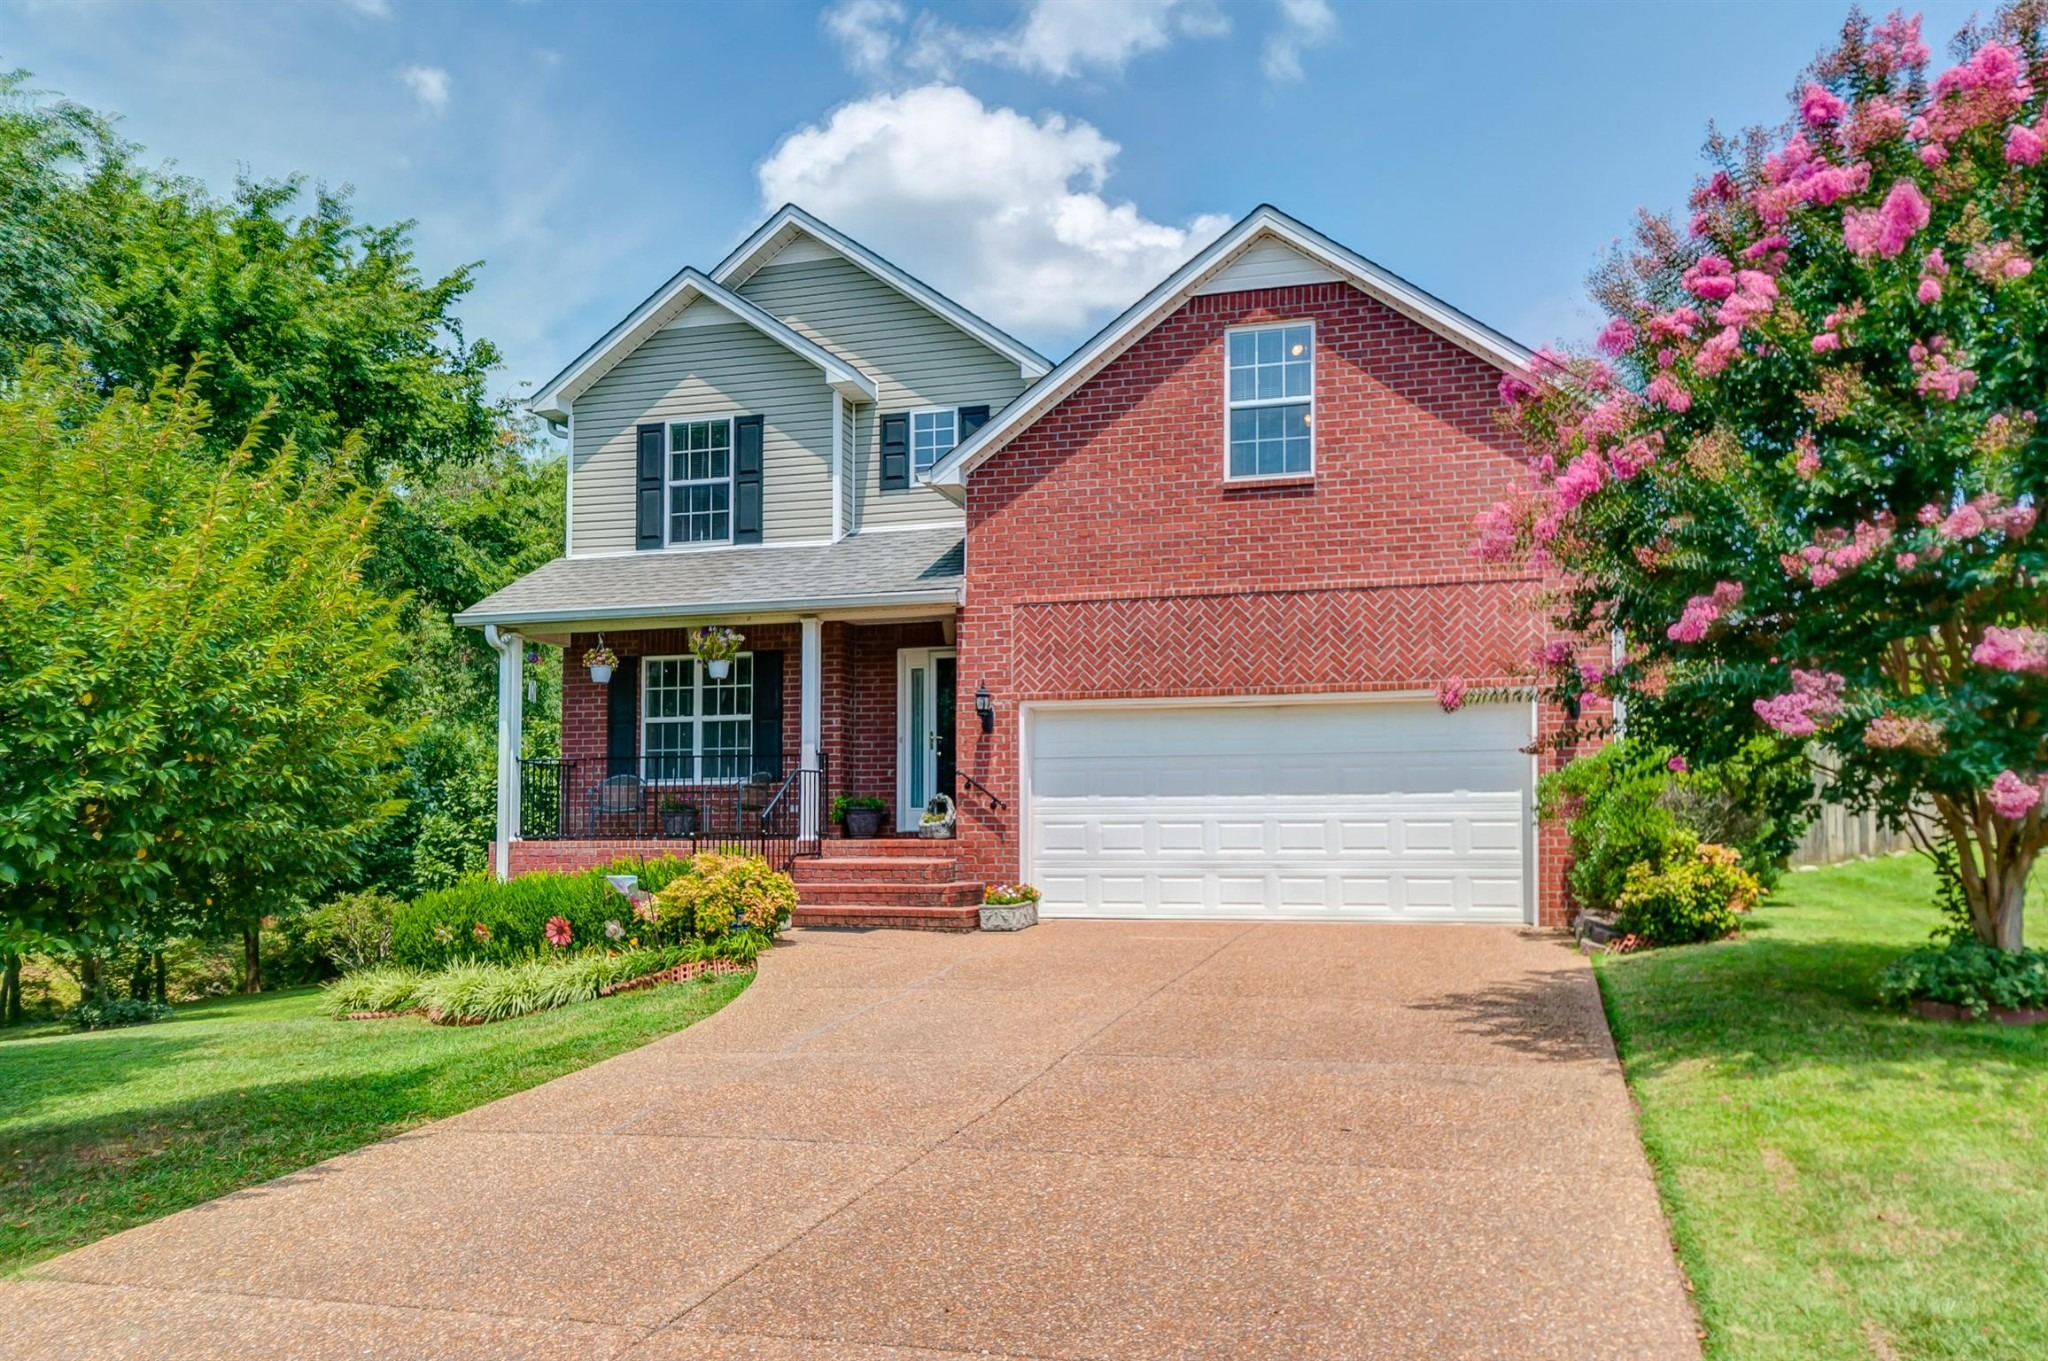 Anderson Acres Subdivision Homes For Sale Thompson Station TN